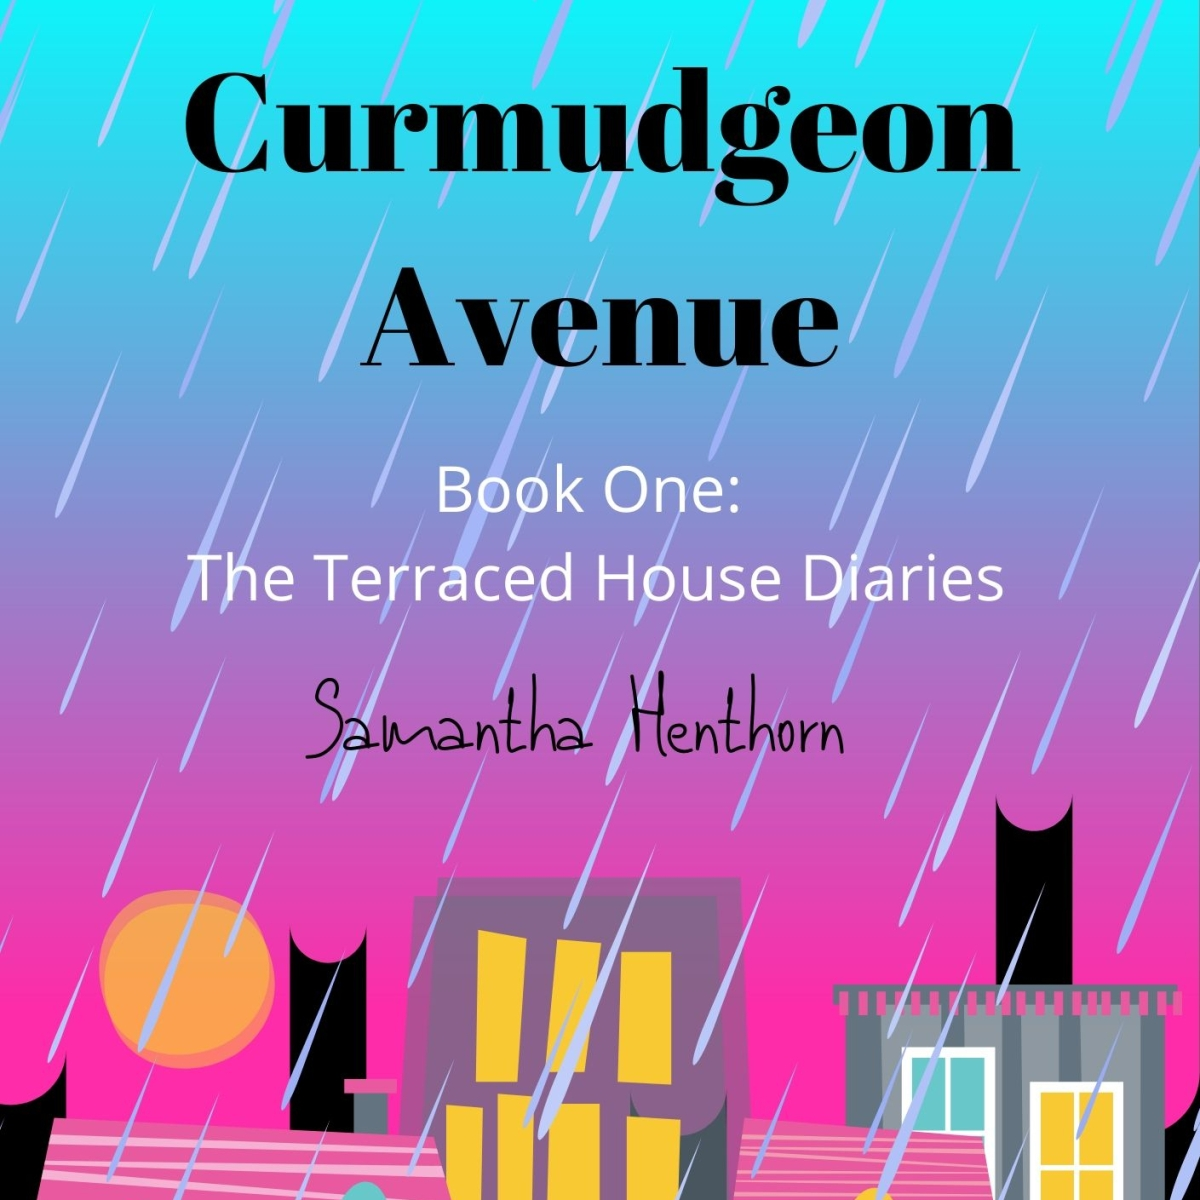 #Audiobook is HERE! Curmudgeon Avenue #1 is Now an Audiobook and I am Over The Moon!#IARTG